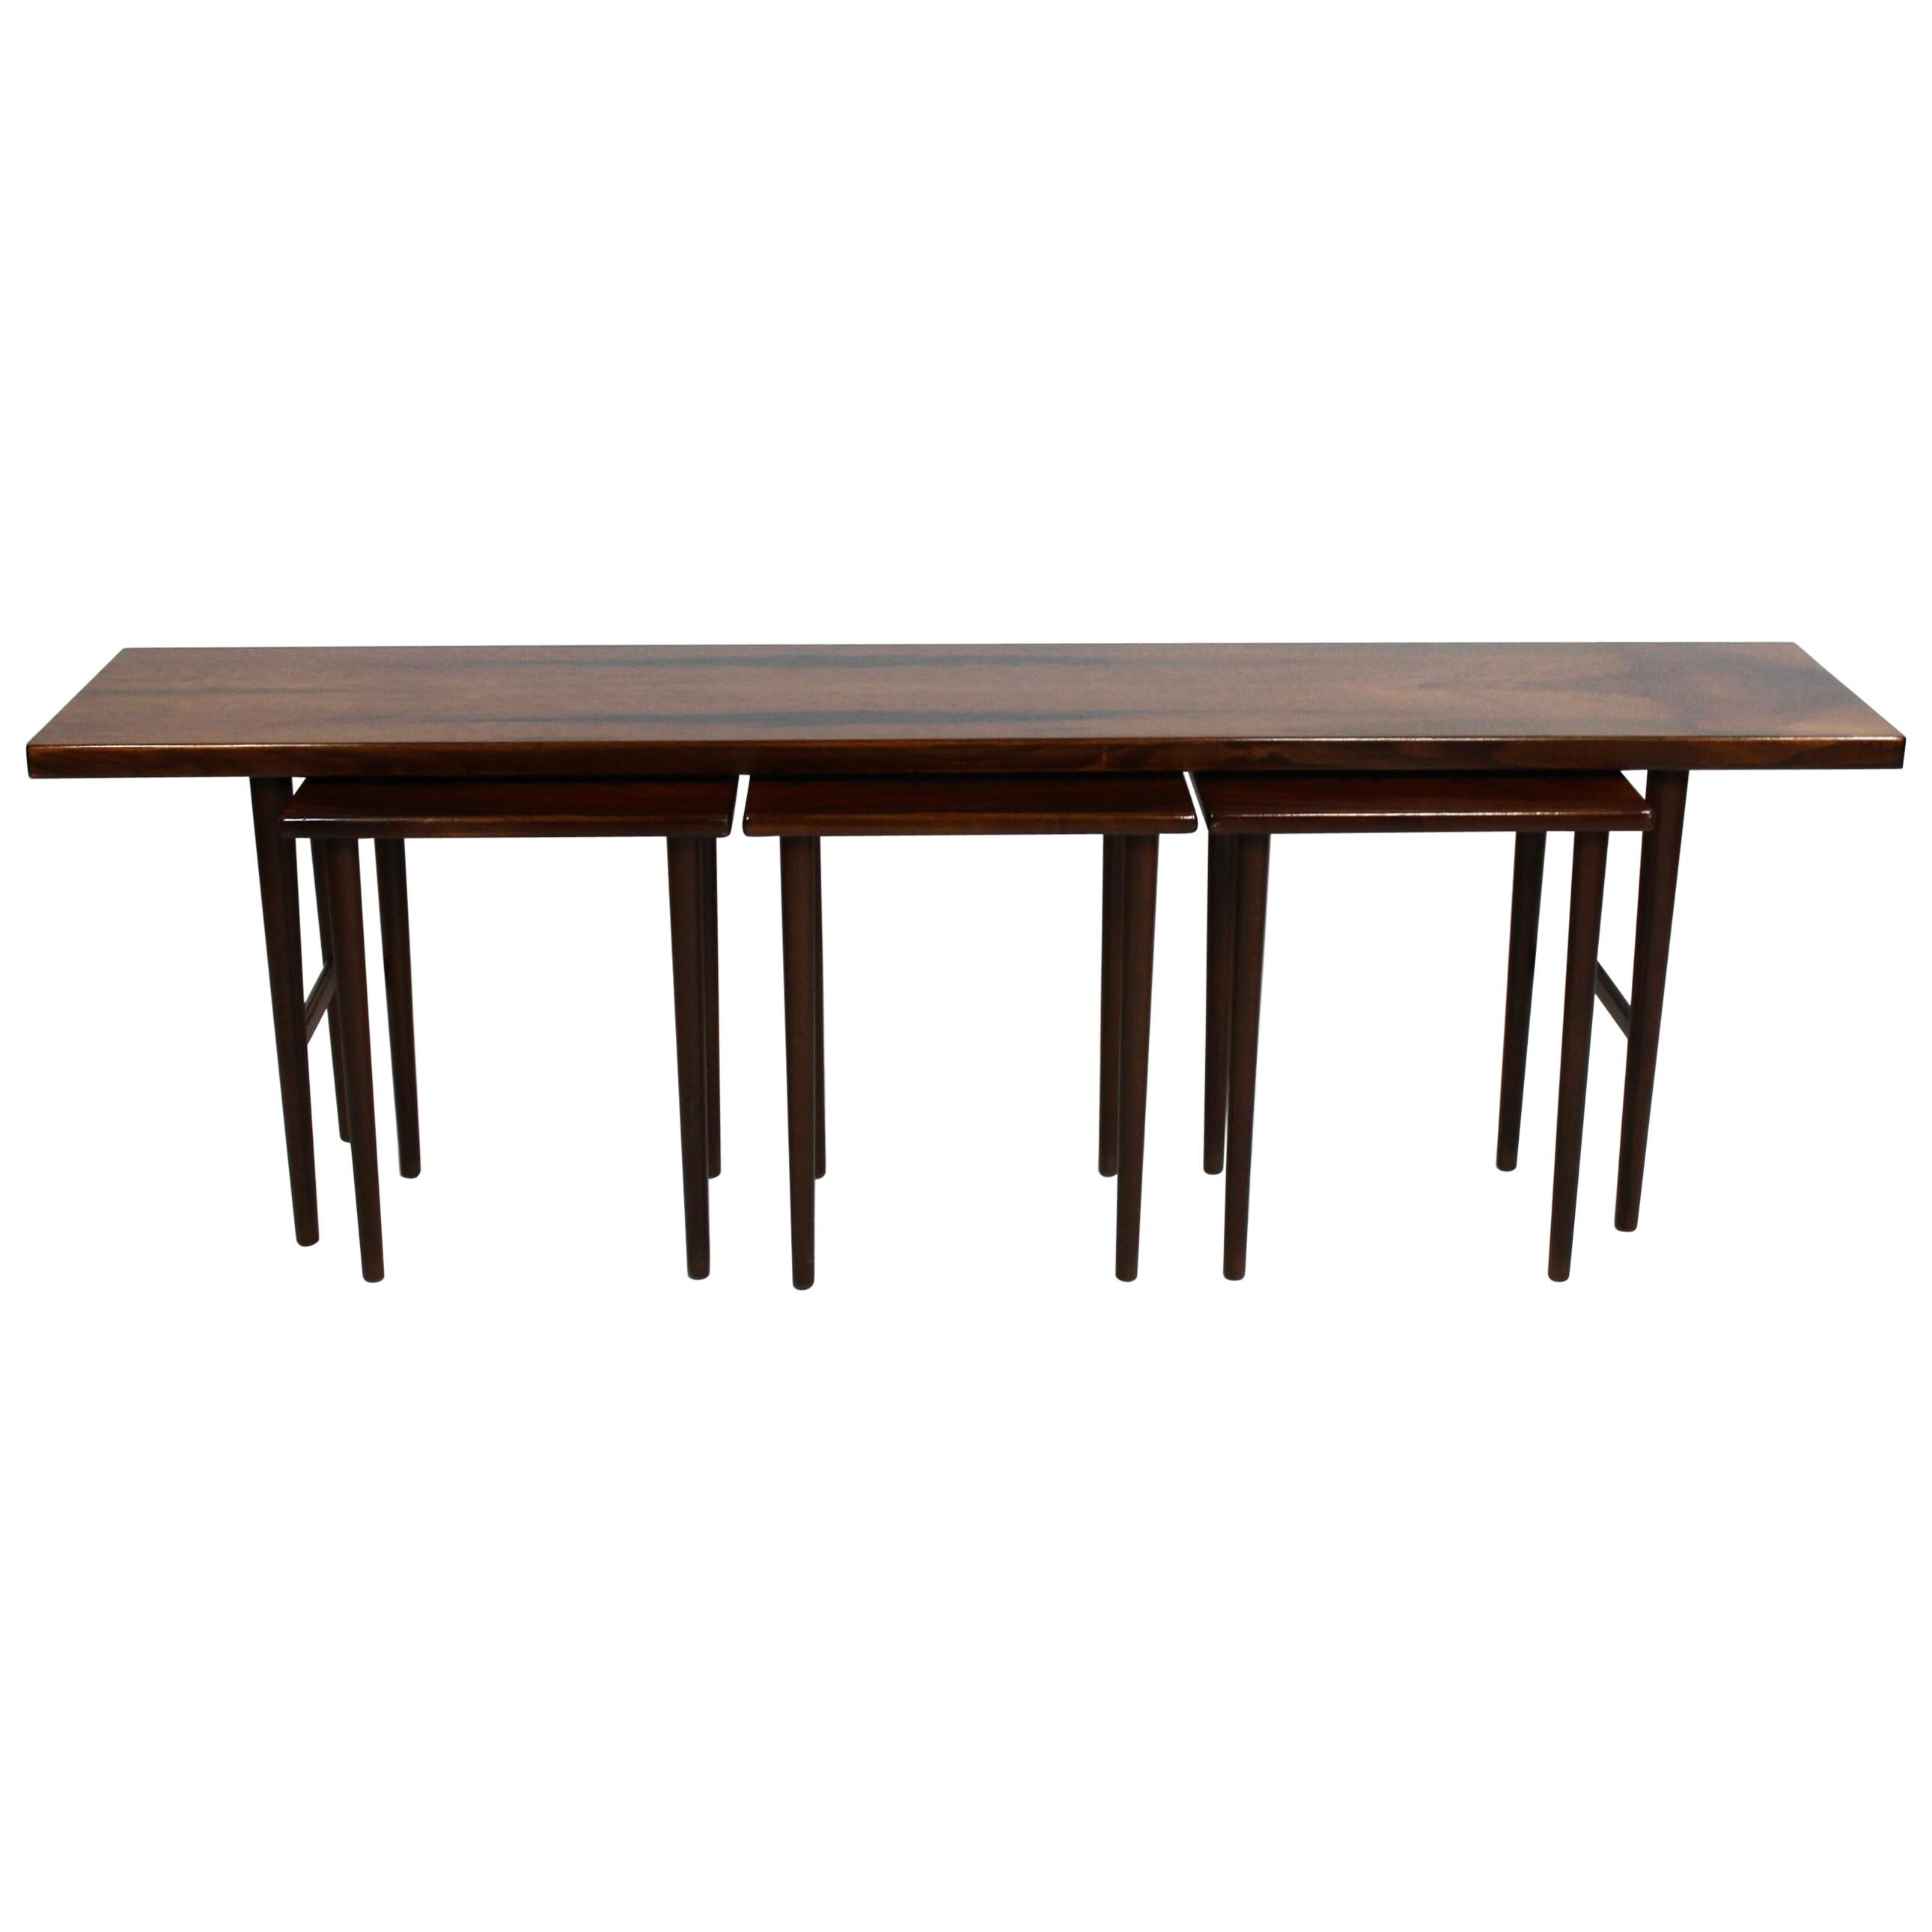 Nesting Table in Rosewood by Kurt Østervig and Jason Furniture, 1960s